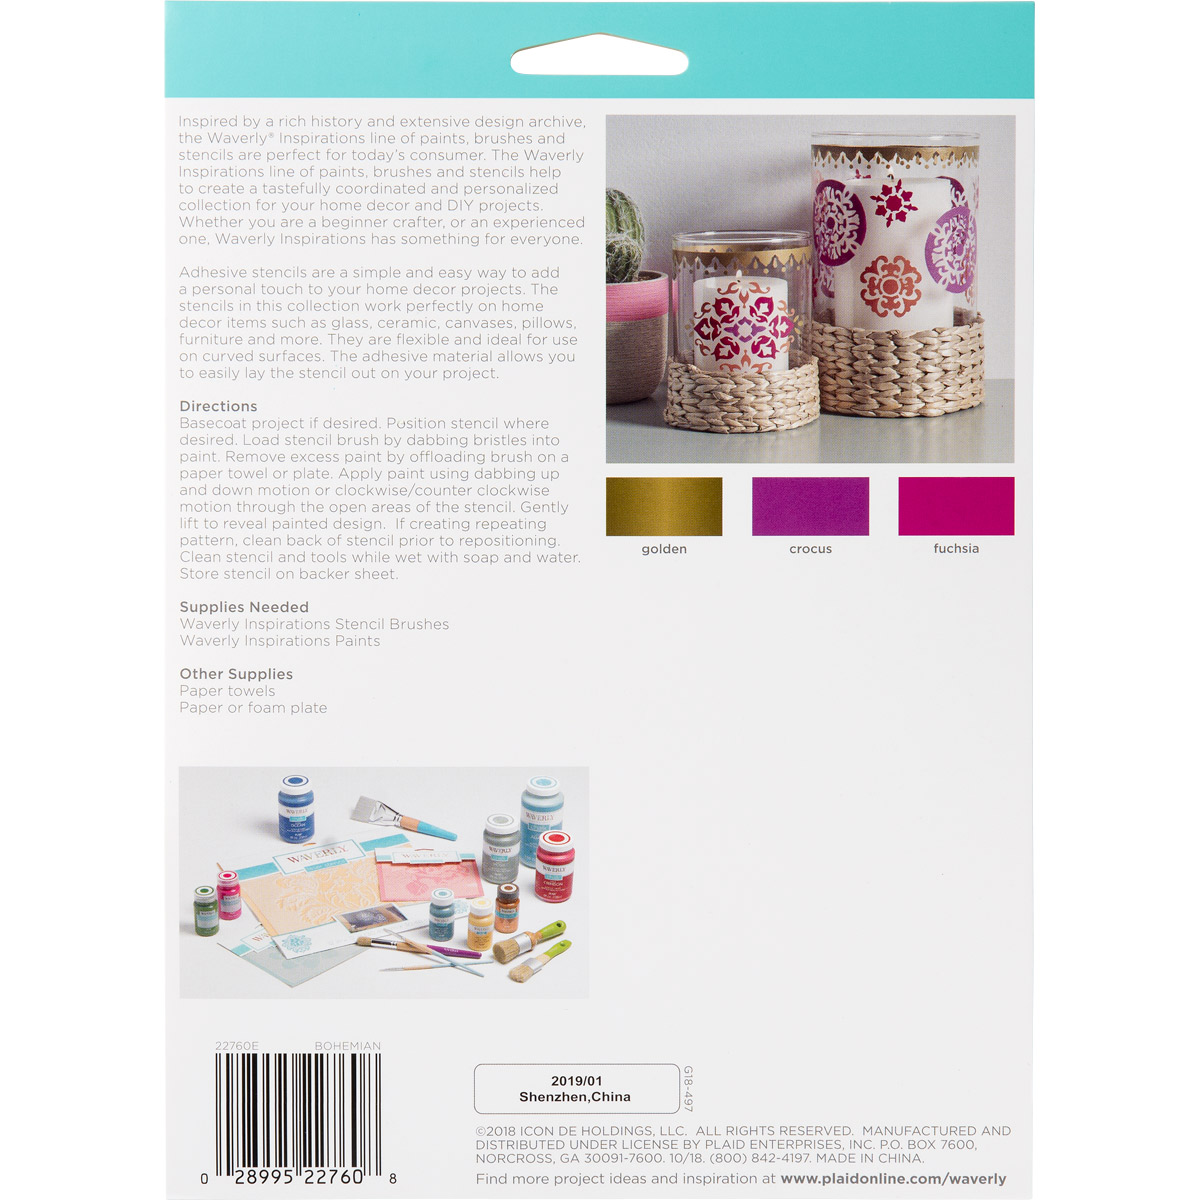 Waverly ® Inspirations Laser-cut Adhesive Stencils - Bohemian, 6